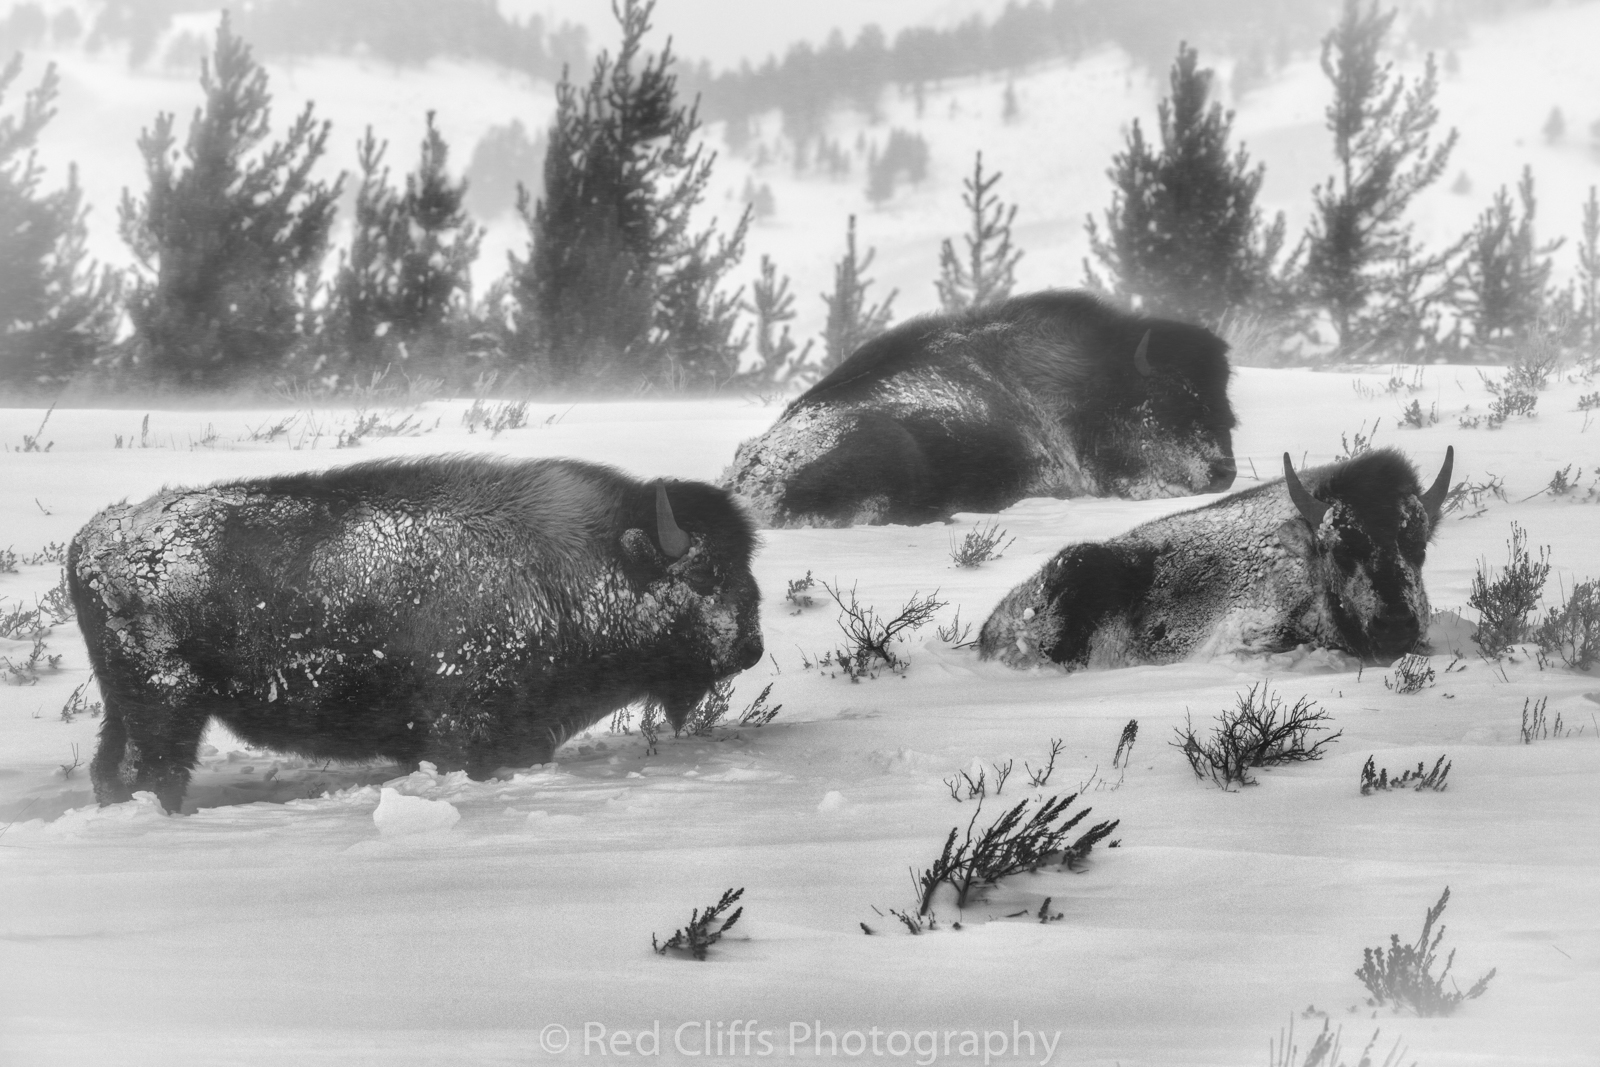 These poor Bison trying to hide from the storm. The 30 plus MPH wind made for some miserable shooting conditions. We hiked out closer to the Bison to get a better angle. the deep snow made for a tough hike. The wind was blowing and this spot was very exposed but the Bison did not appear to mind the conditions.